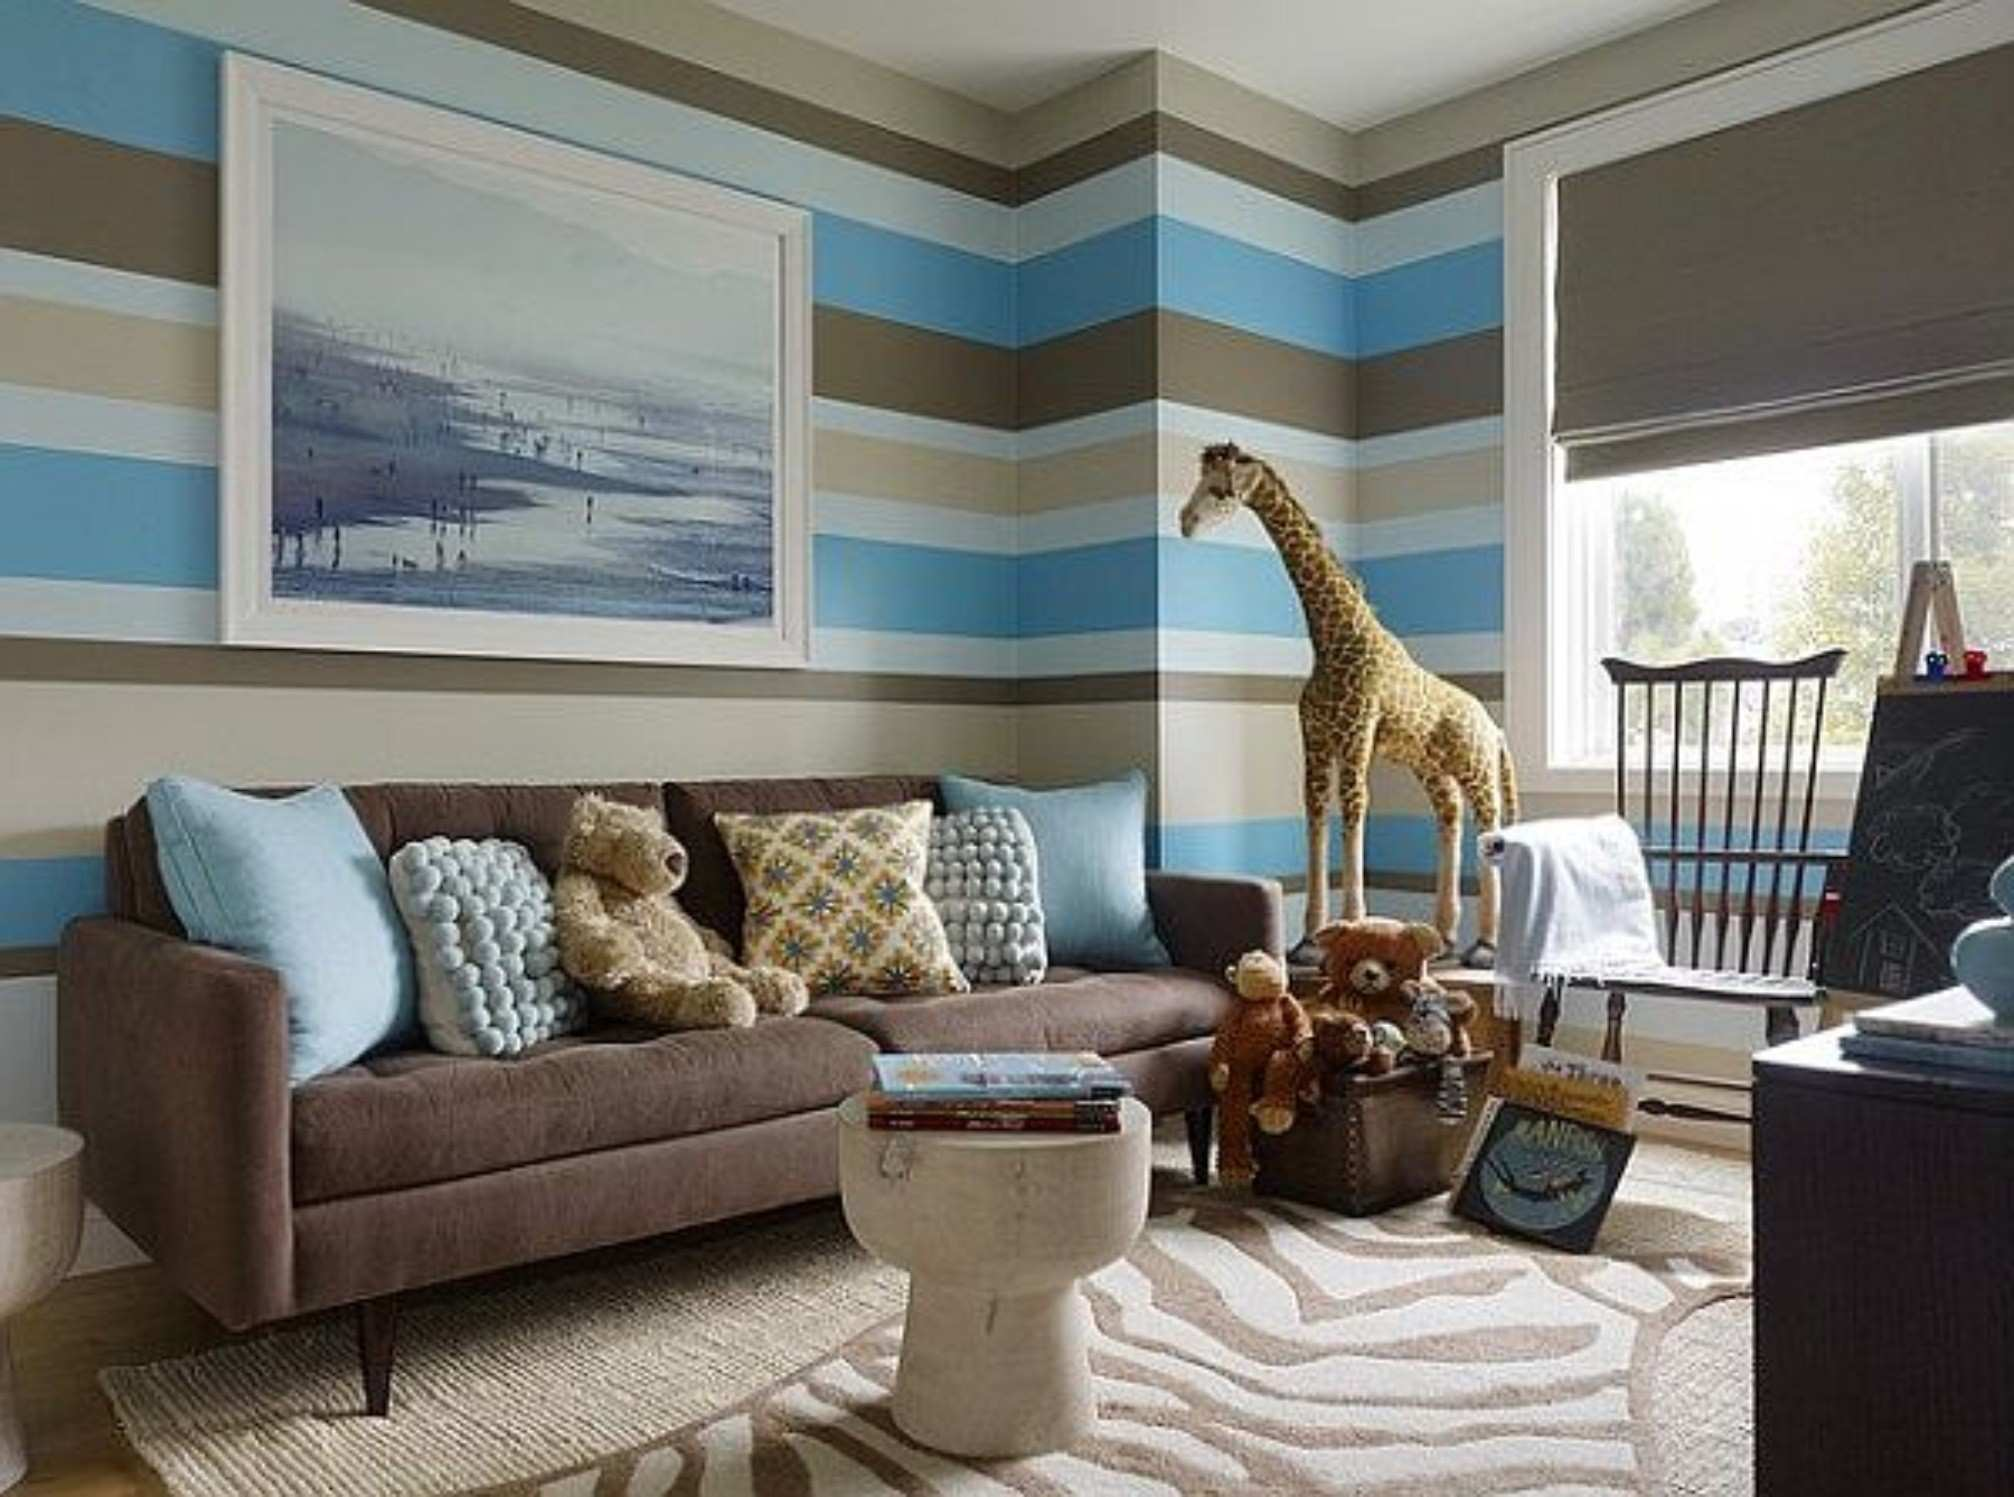 Chocolate Brown And Blue Living Room Ideas With Wall Painting